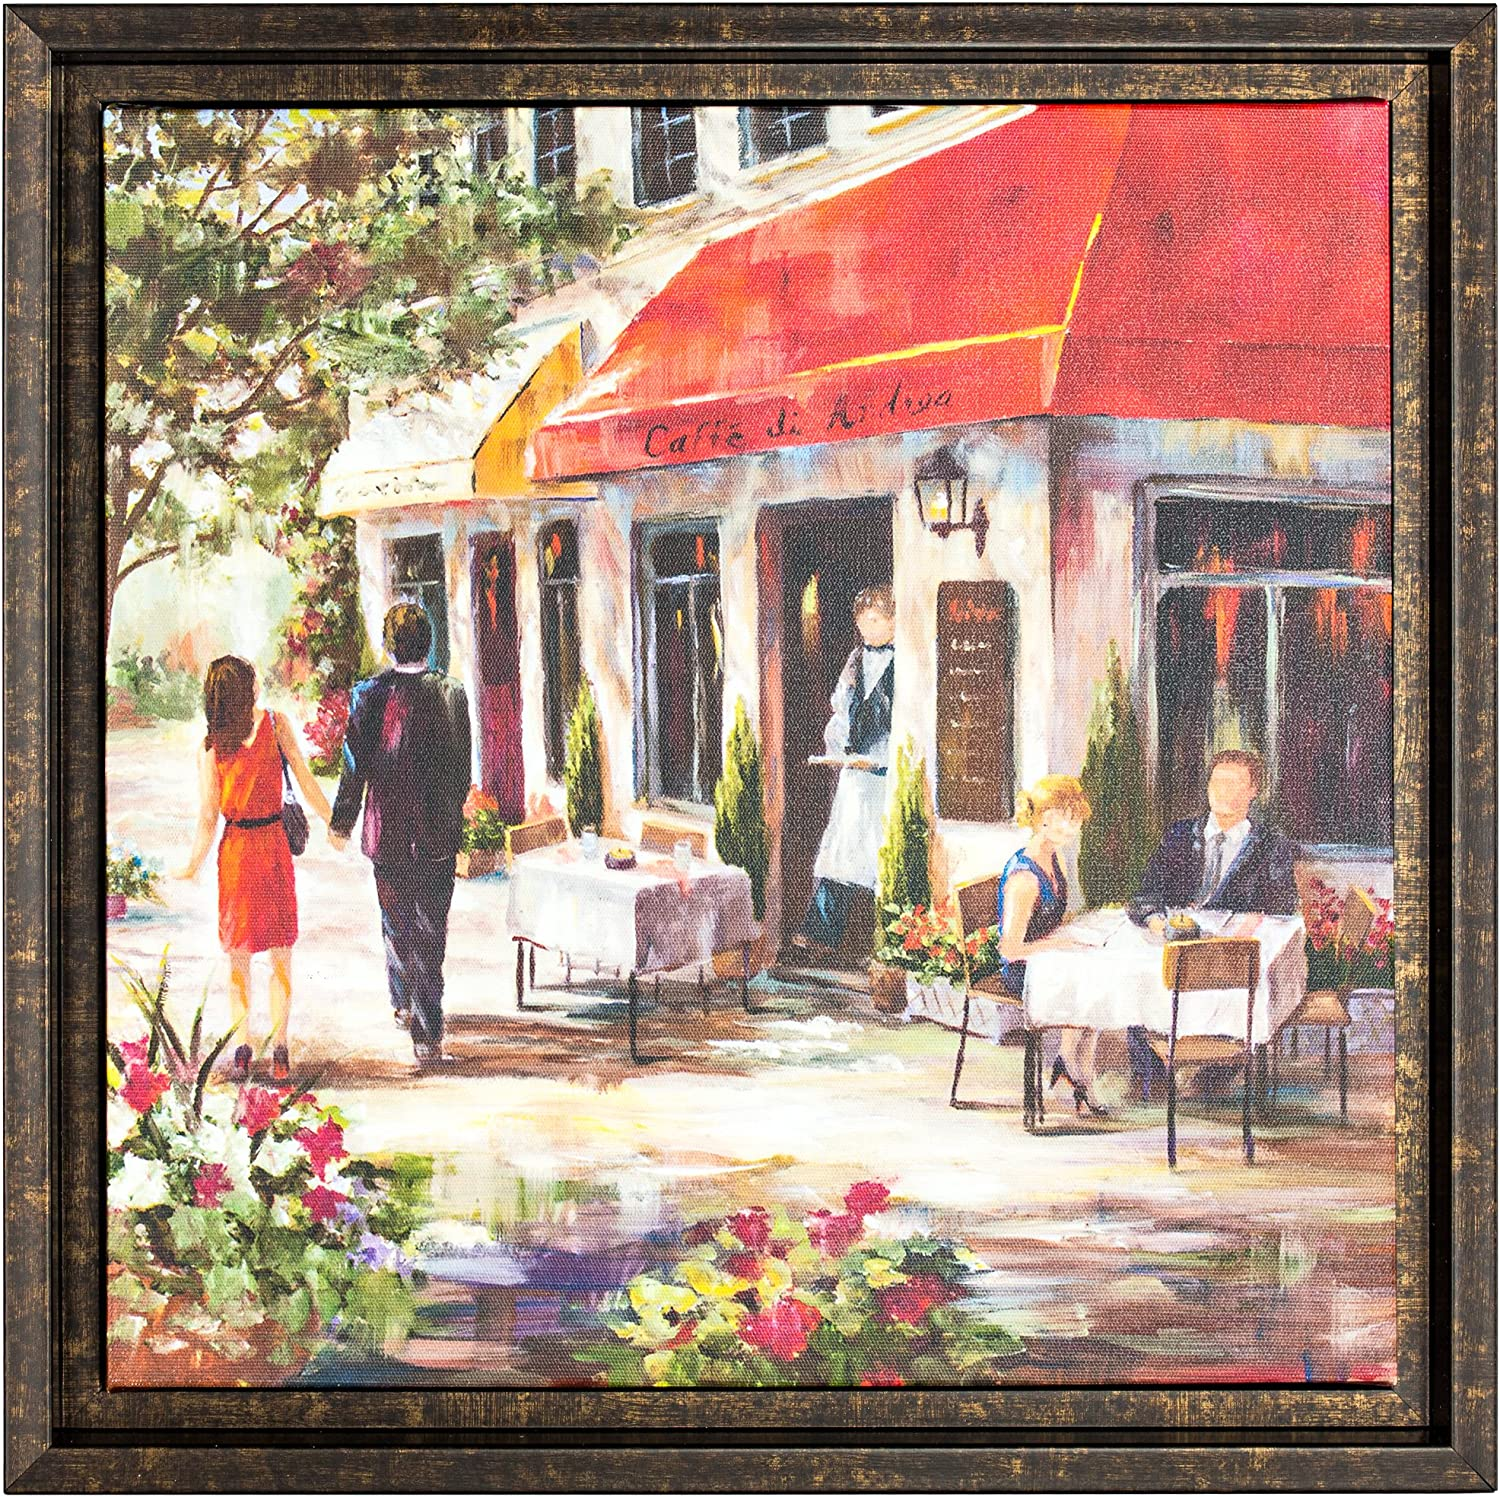 American Art Decor Cafe Afternoon 2 By Ruane Manning Framed Painting Print On Wrapped Canvas Wall Art Decor Posters Prints